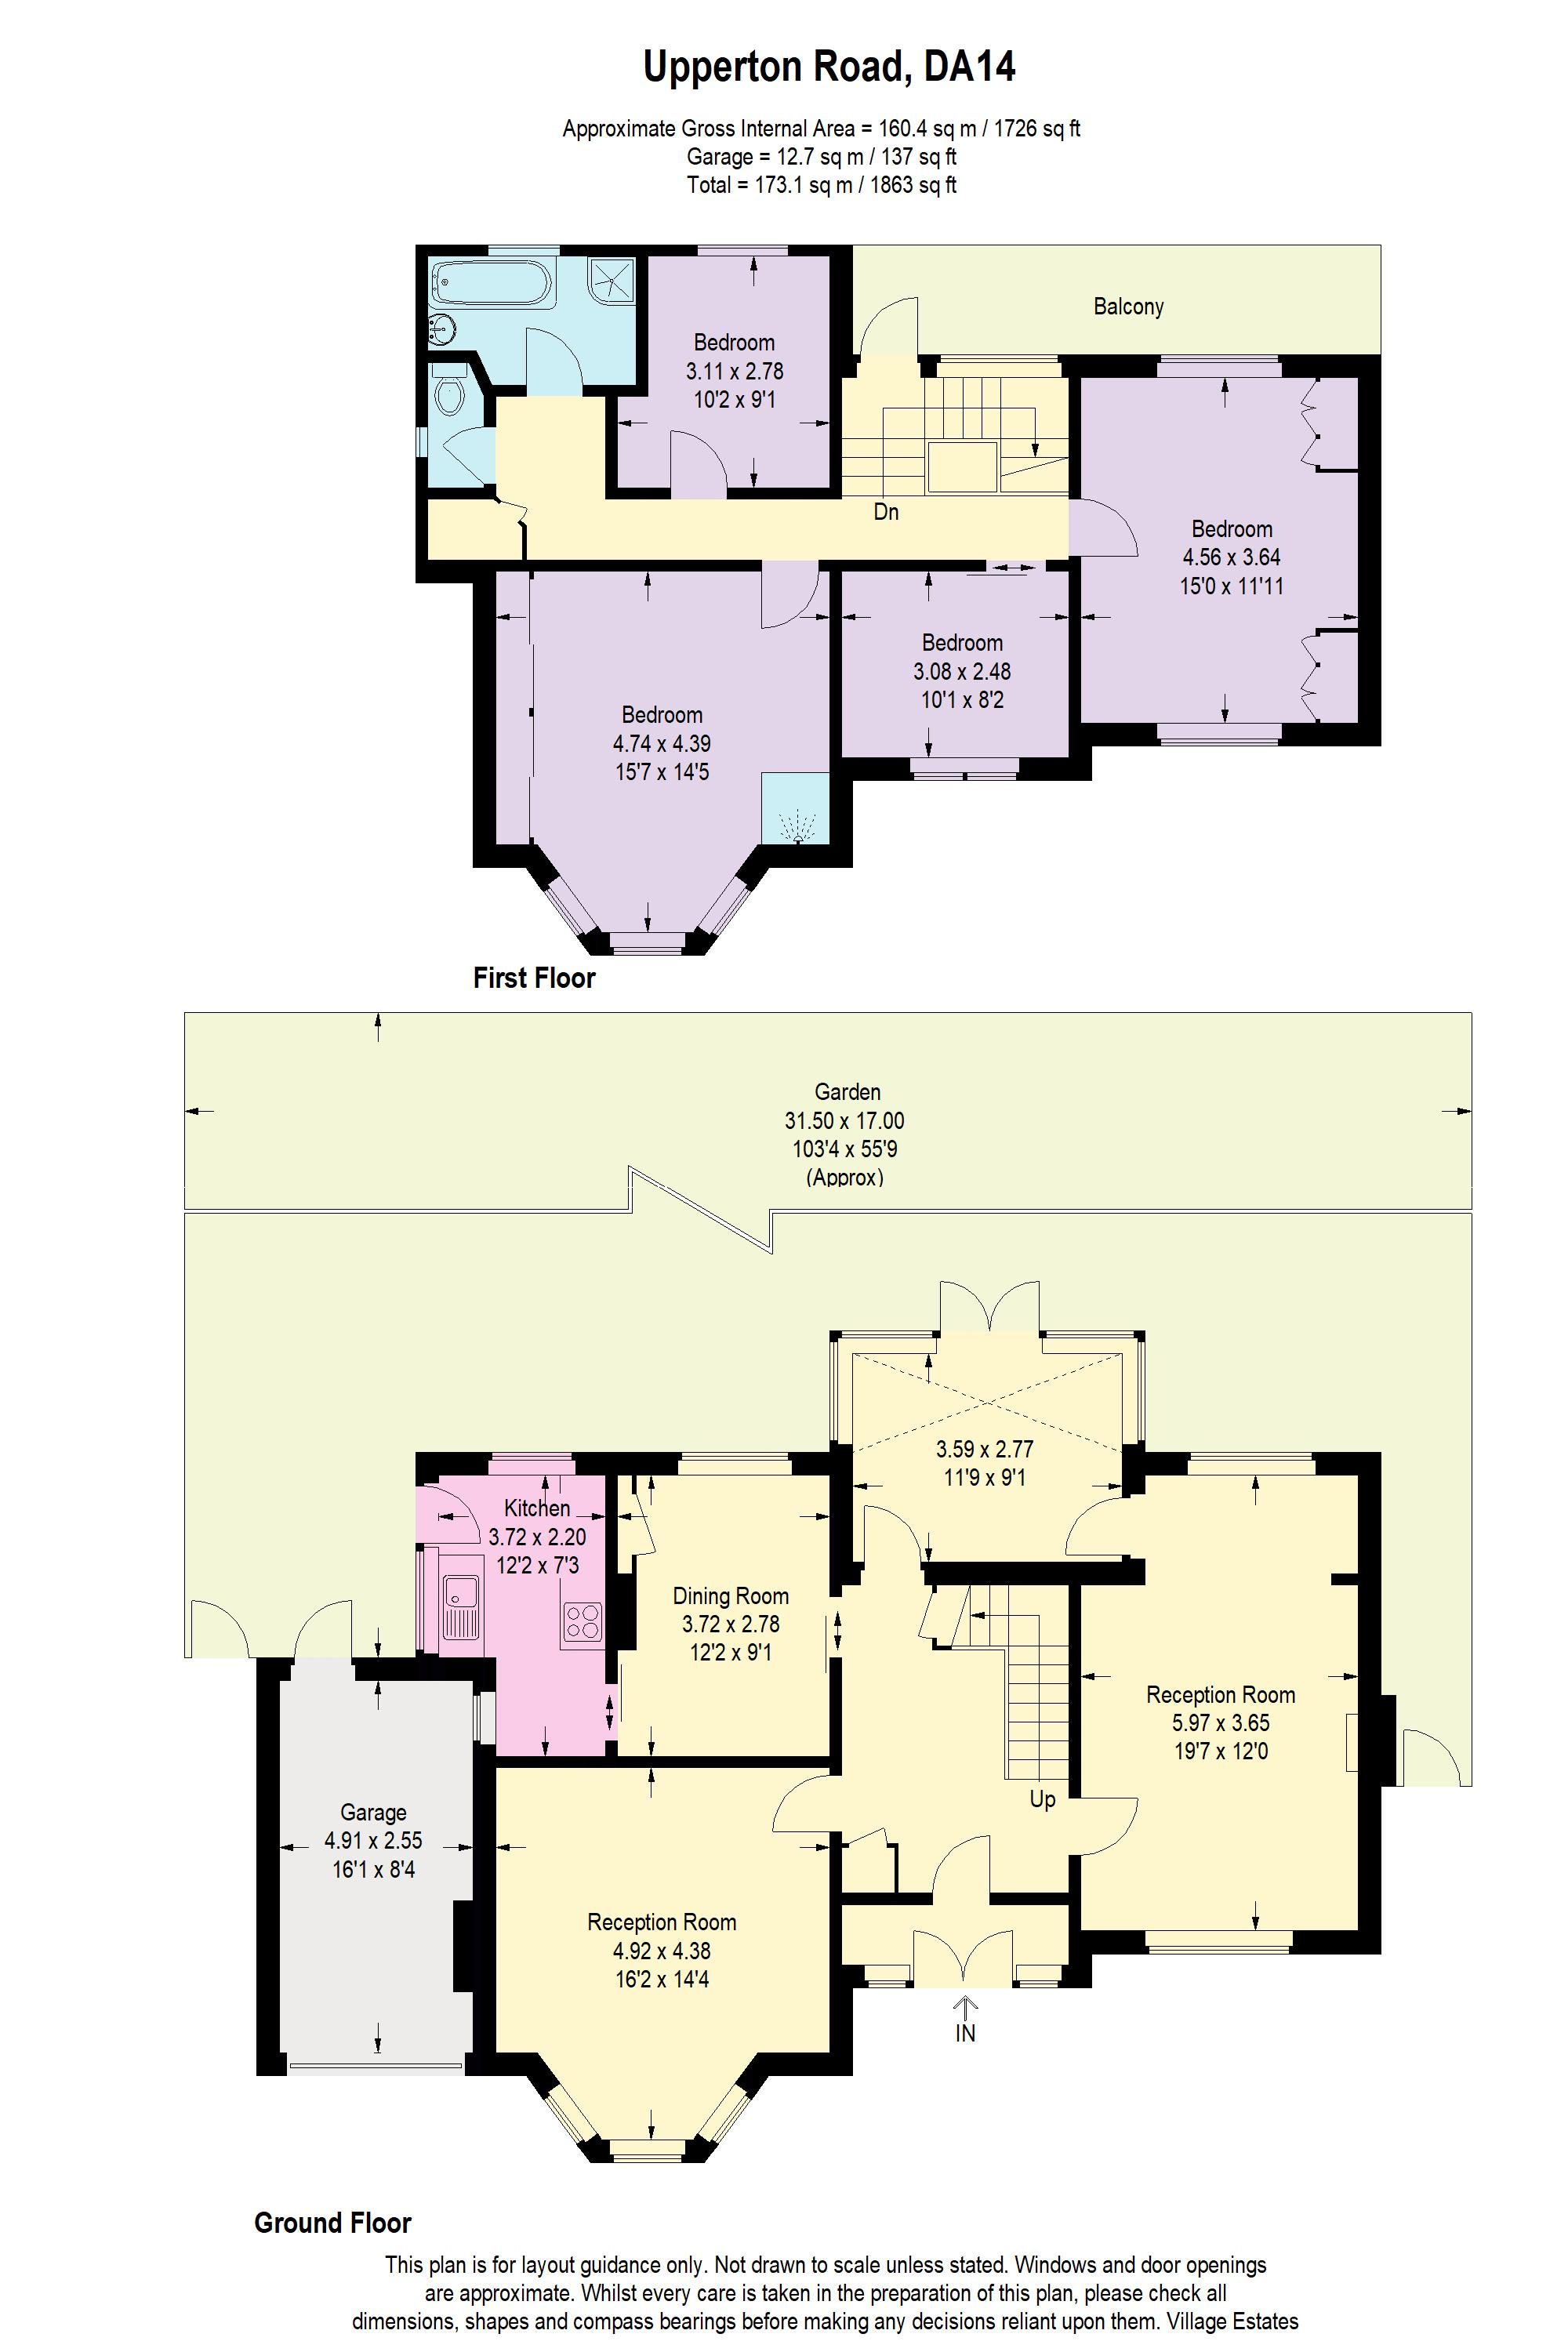 Upperton Road Floorplan